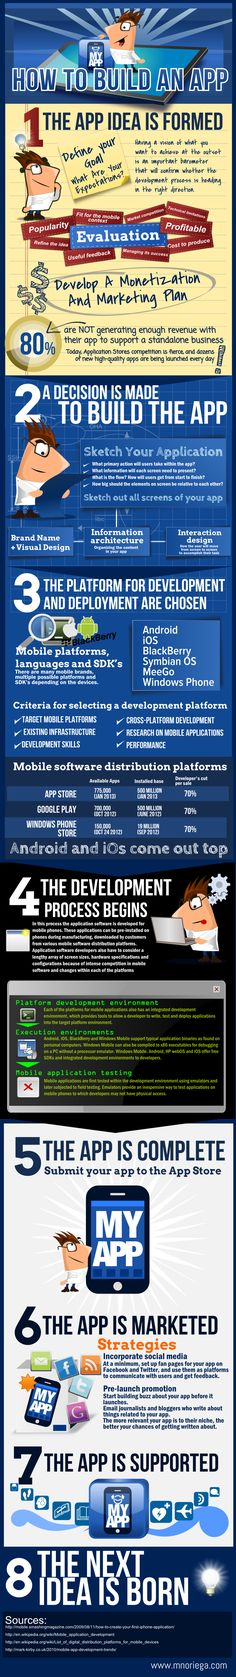 #Infographic on How to build an #APP? #Tech